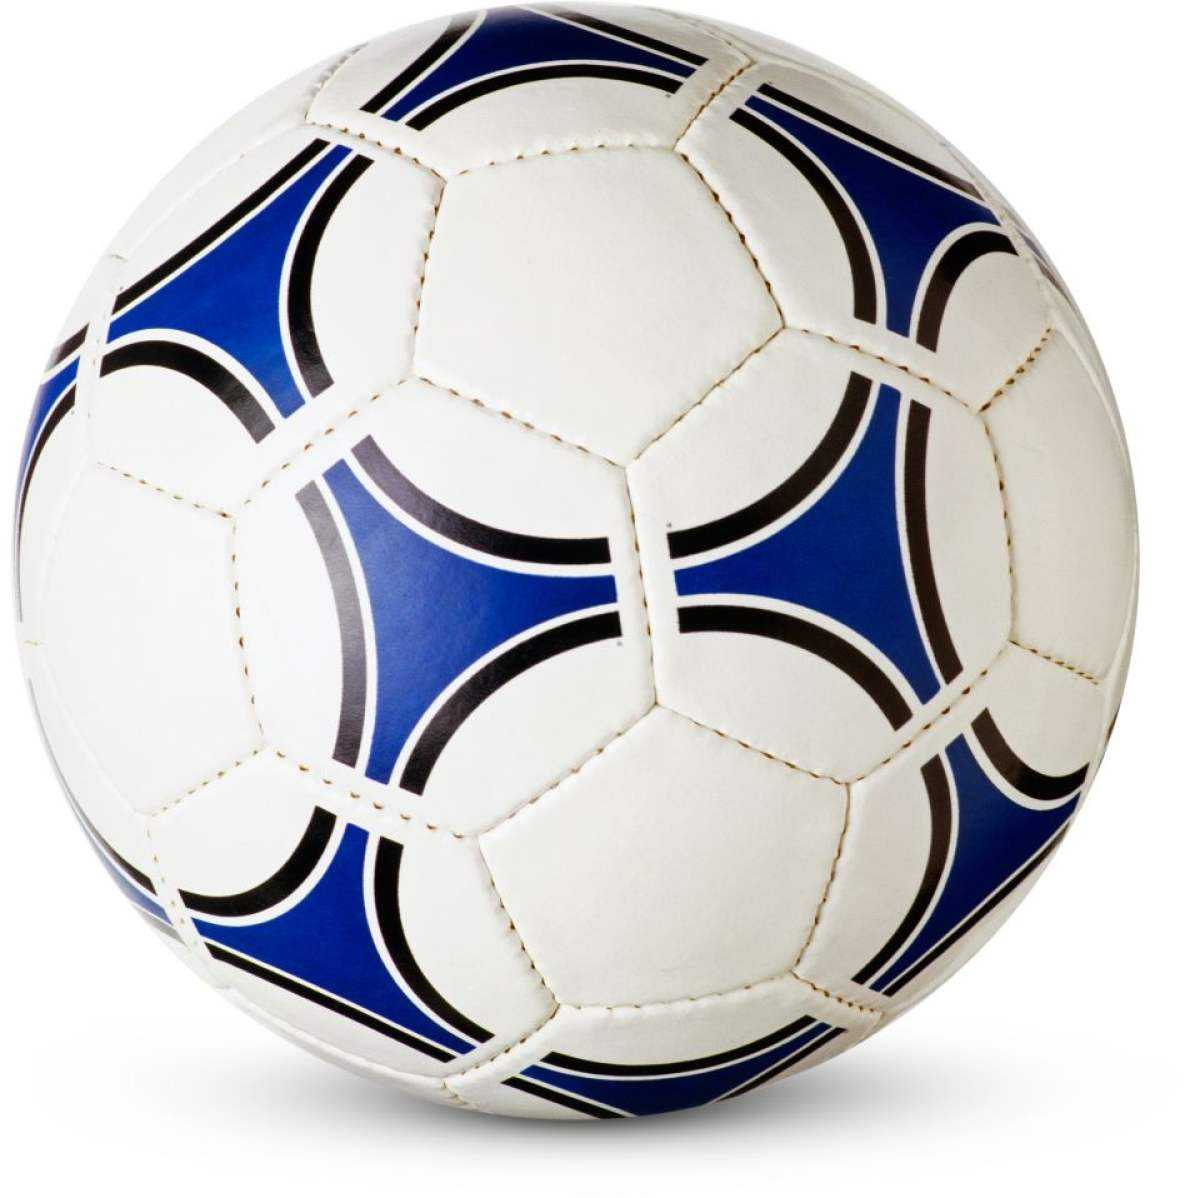 Beautiful Standard Size Leather Football for Professional Game, For Boys Or Kids Foot ball Games